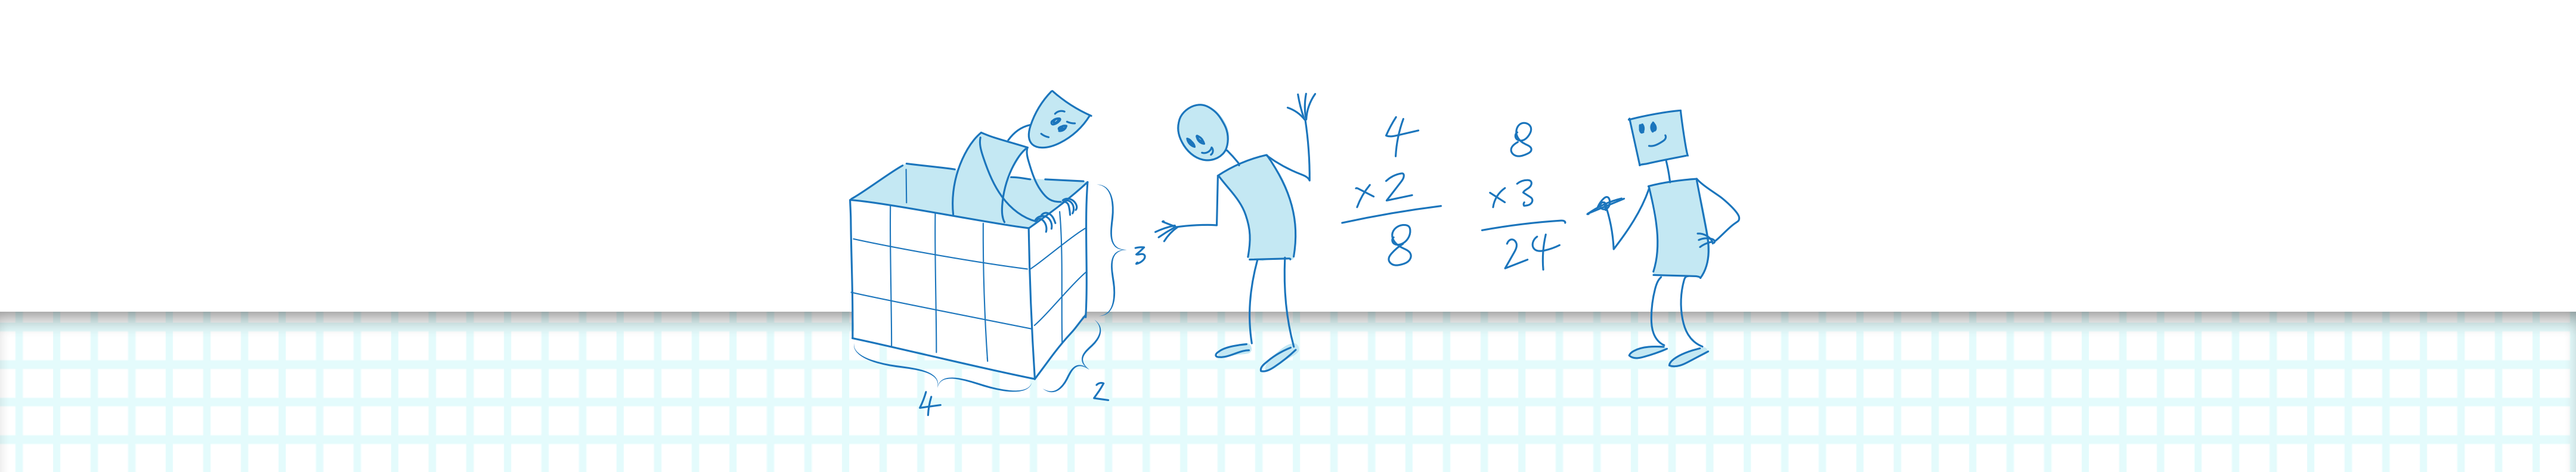 math-characters-multiplication